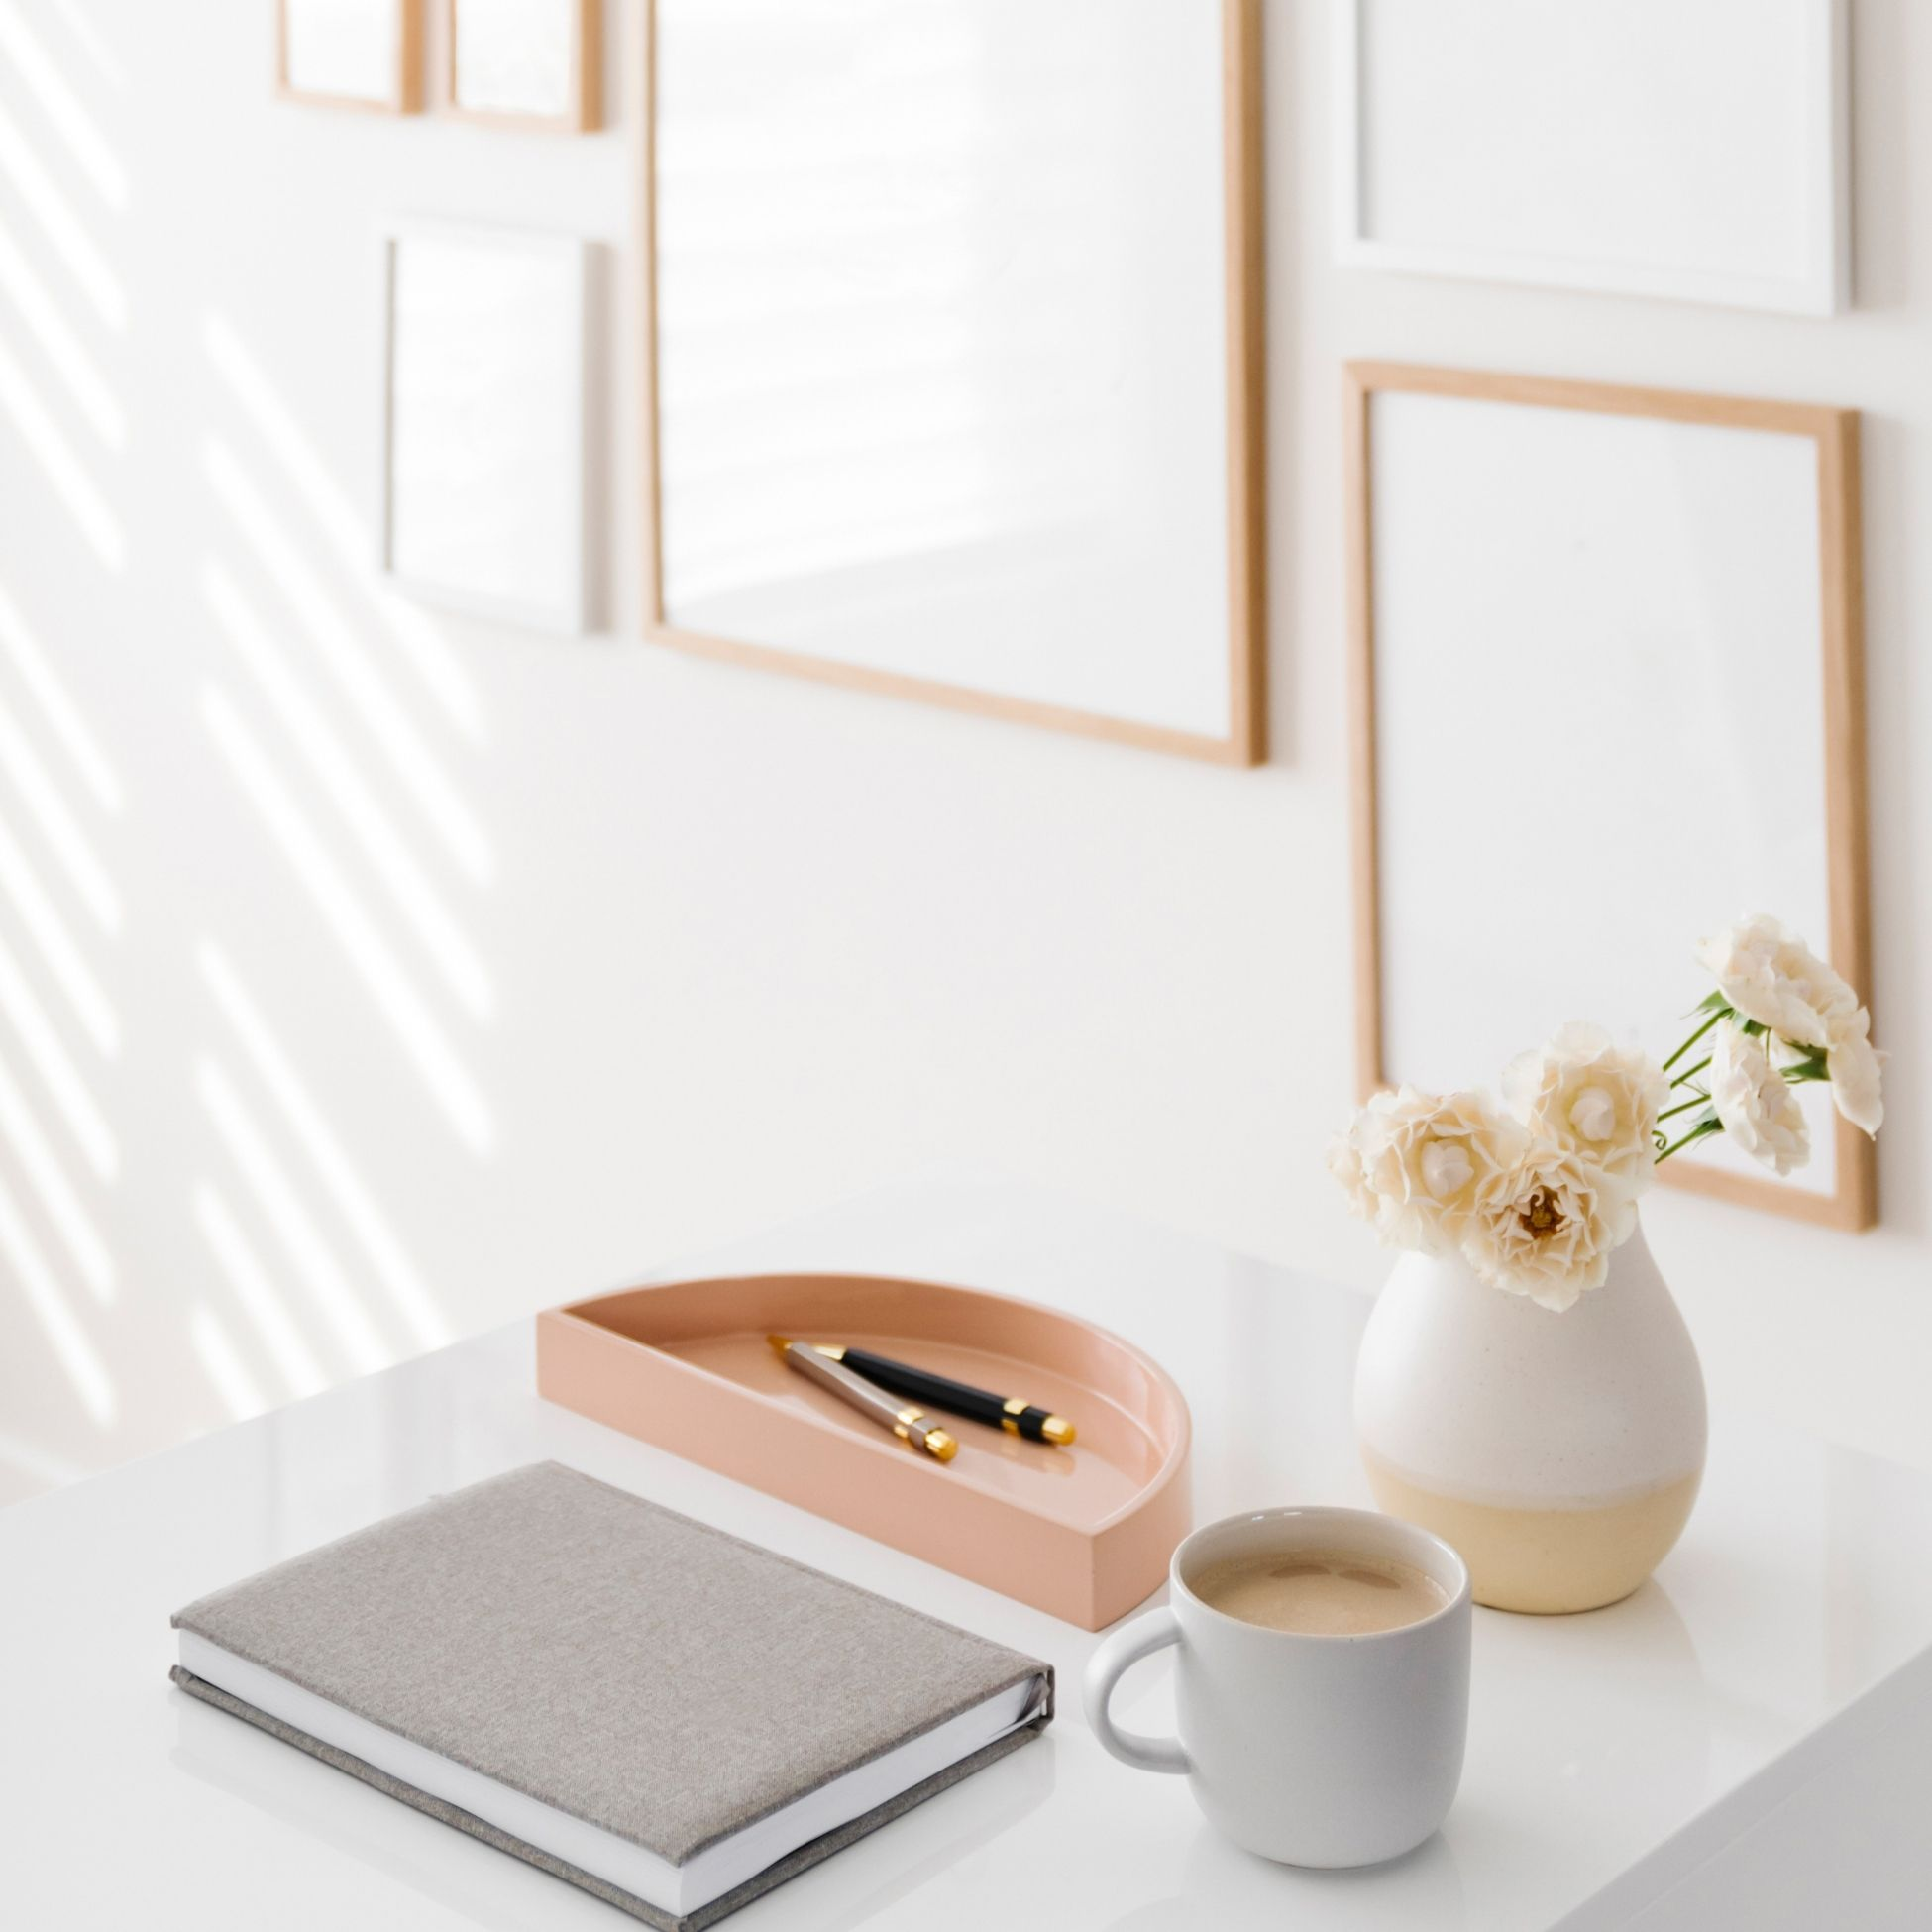 A desk ready to take notes; a notebook and pen are next to a cup of coffee and vase of flowers